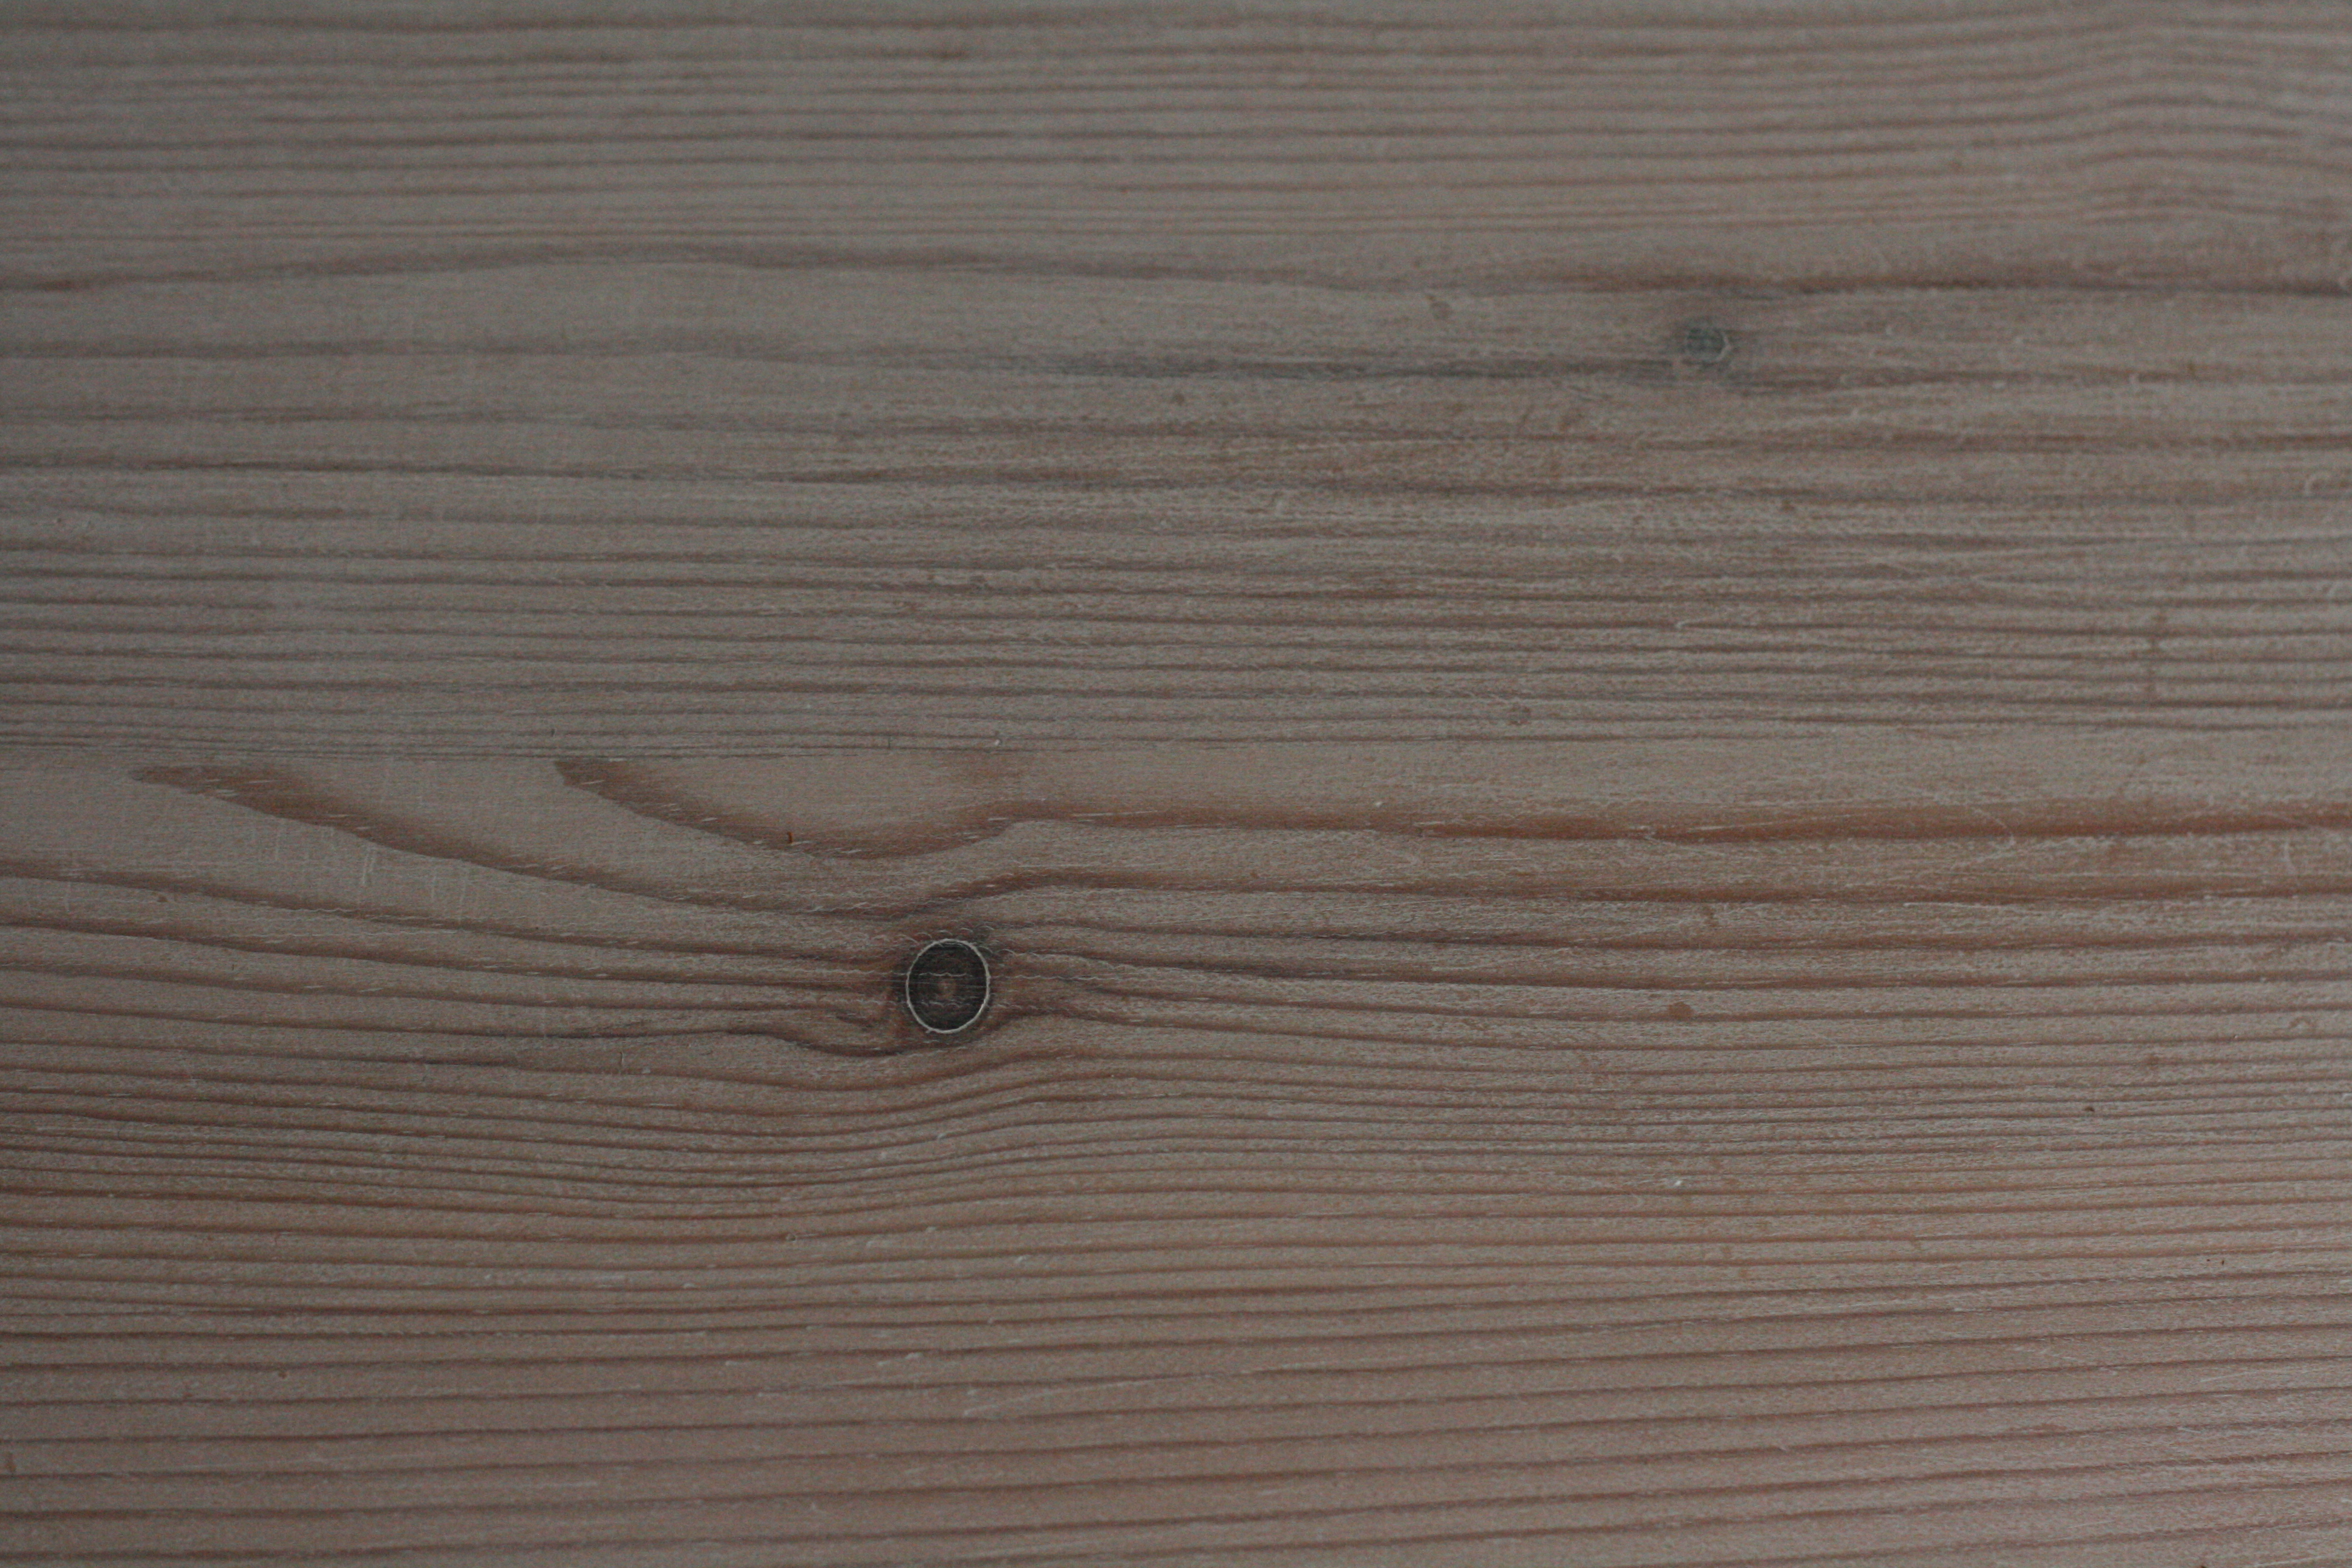 Superb img of Floor Wood Textures Panels Deck Hd Wallpaper Of Nature Amp Landscapes  with #5E4F47 color and 3888x2592 pixels